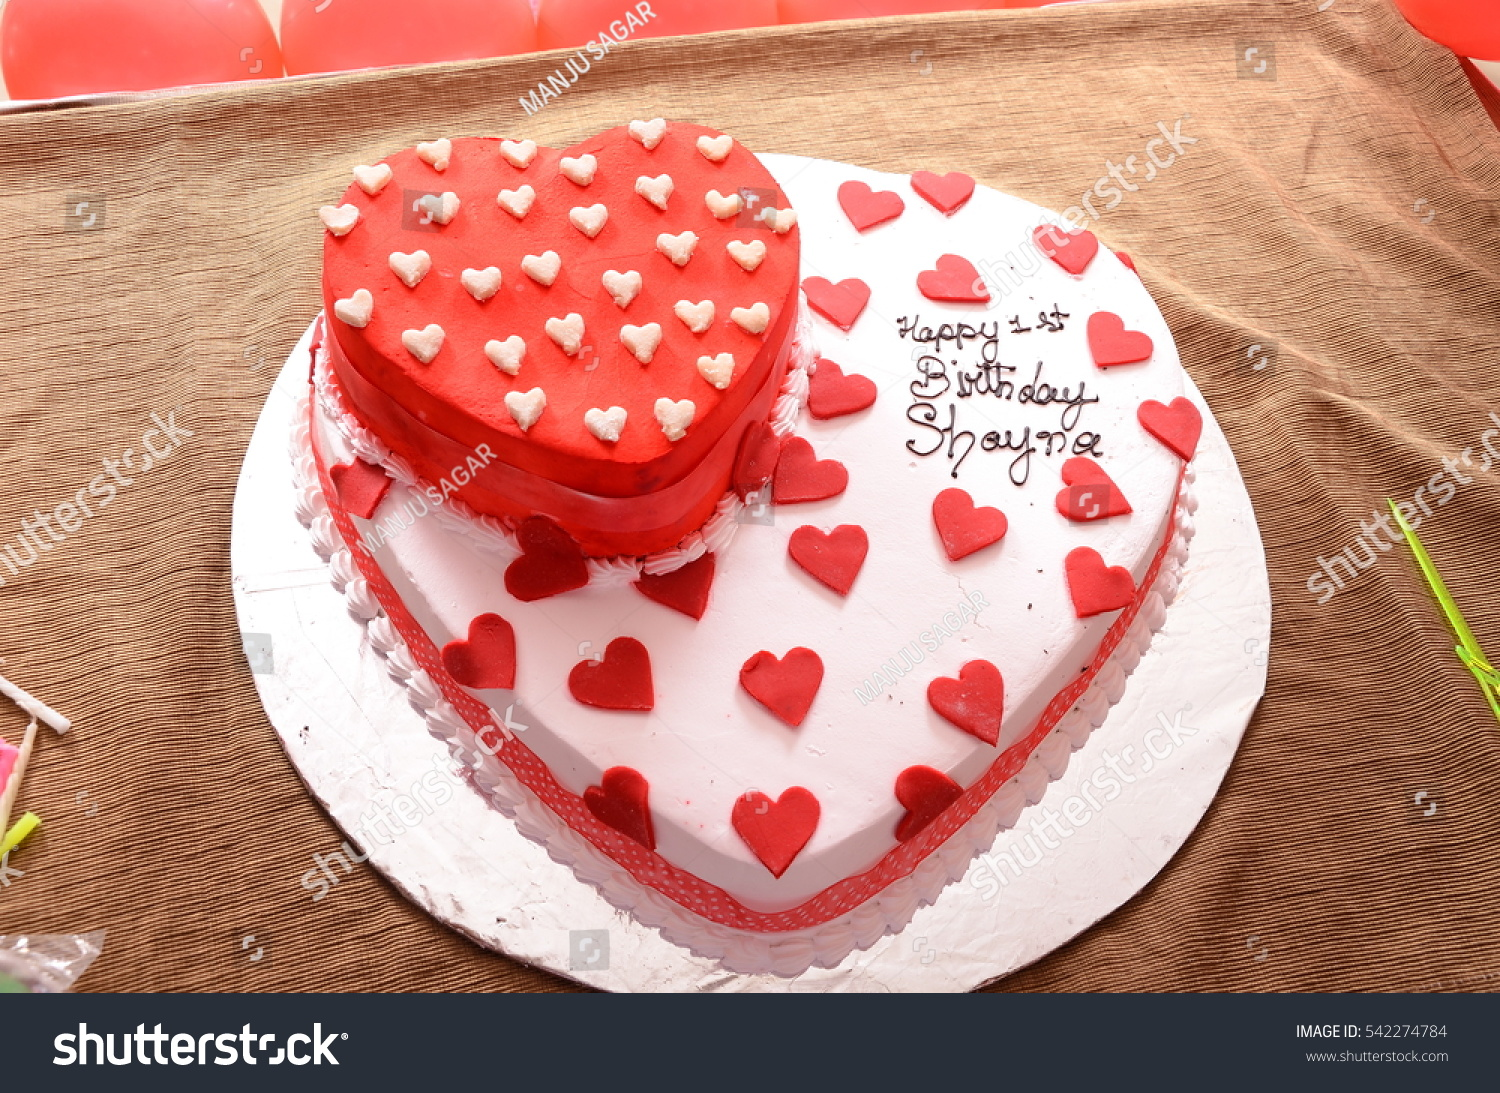 4d6f203f0 Cakes are special. Every birthday, every celebration ends with something  sweet, a cake.